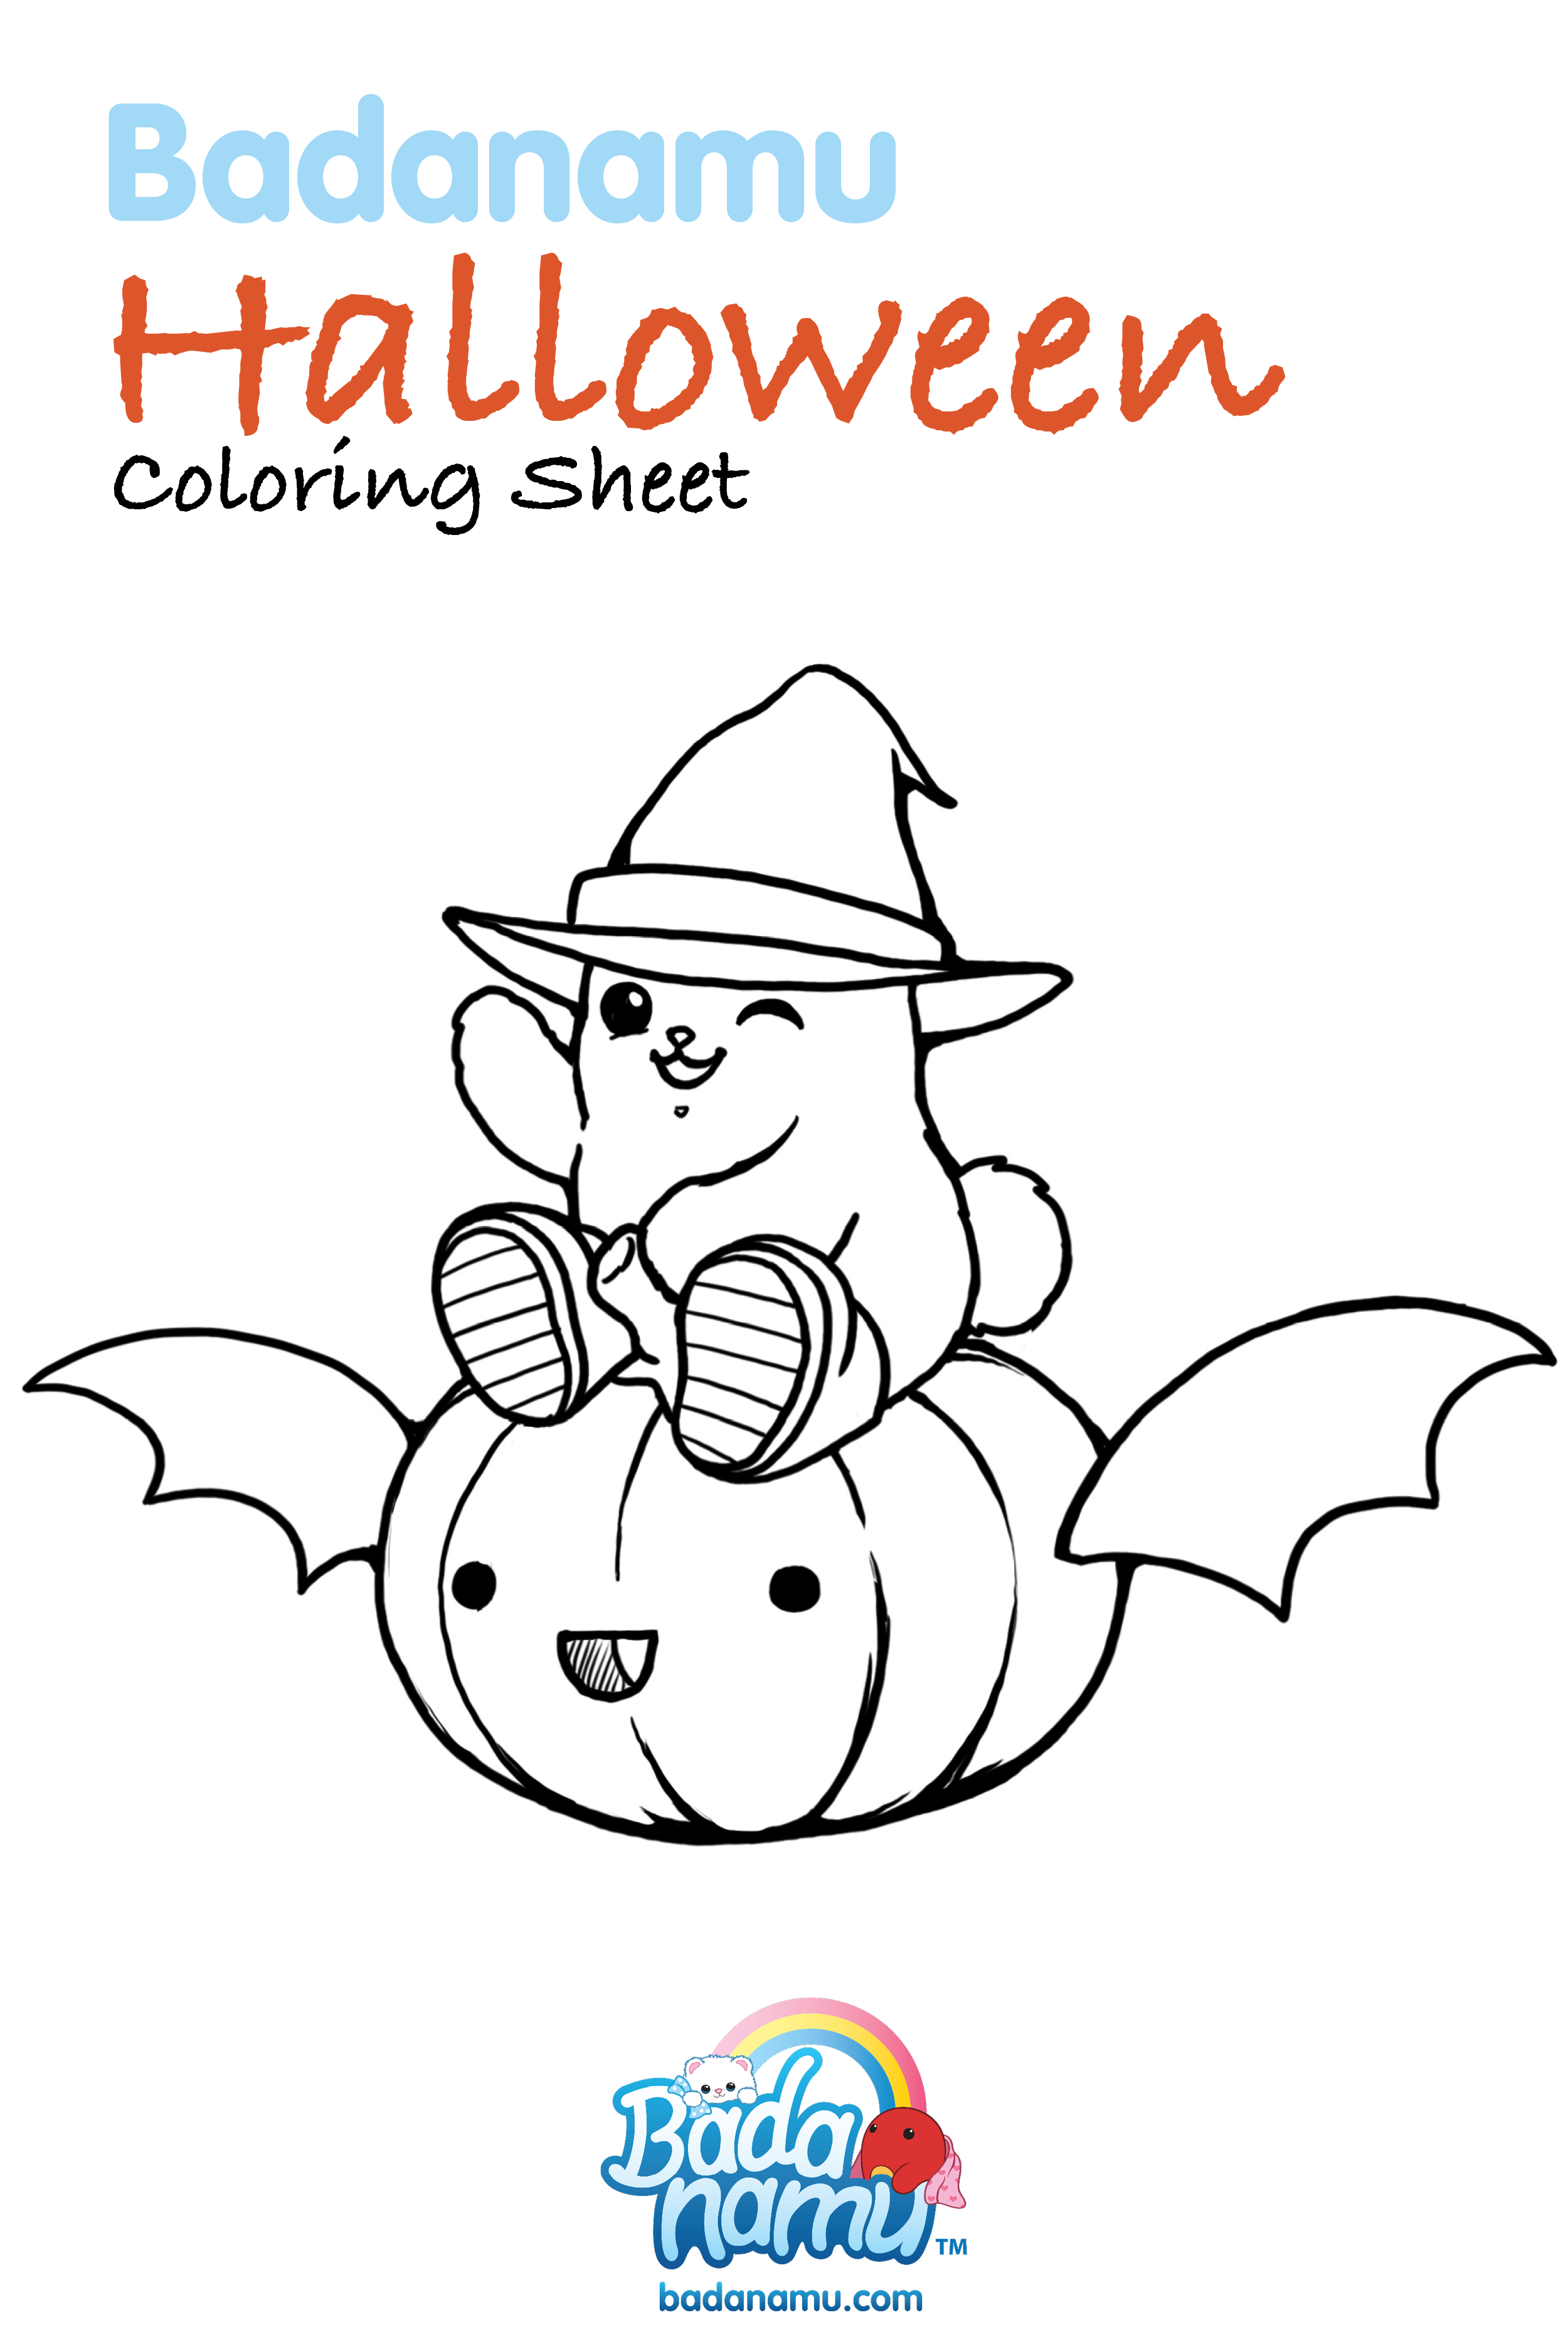 Badanamu Halloween Coloring Sheet! Get your crayons ready and color ...